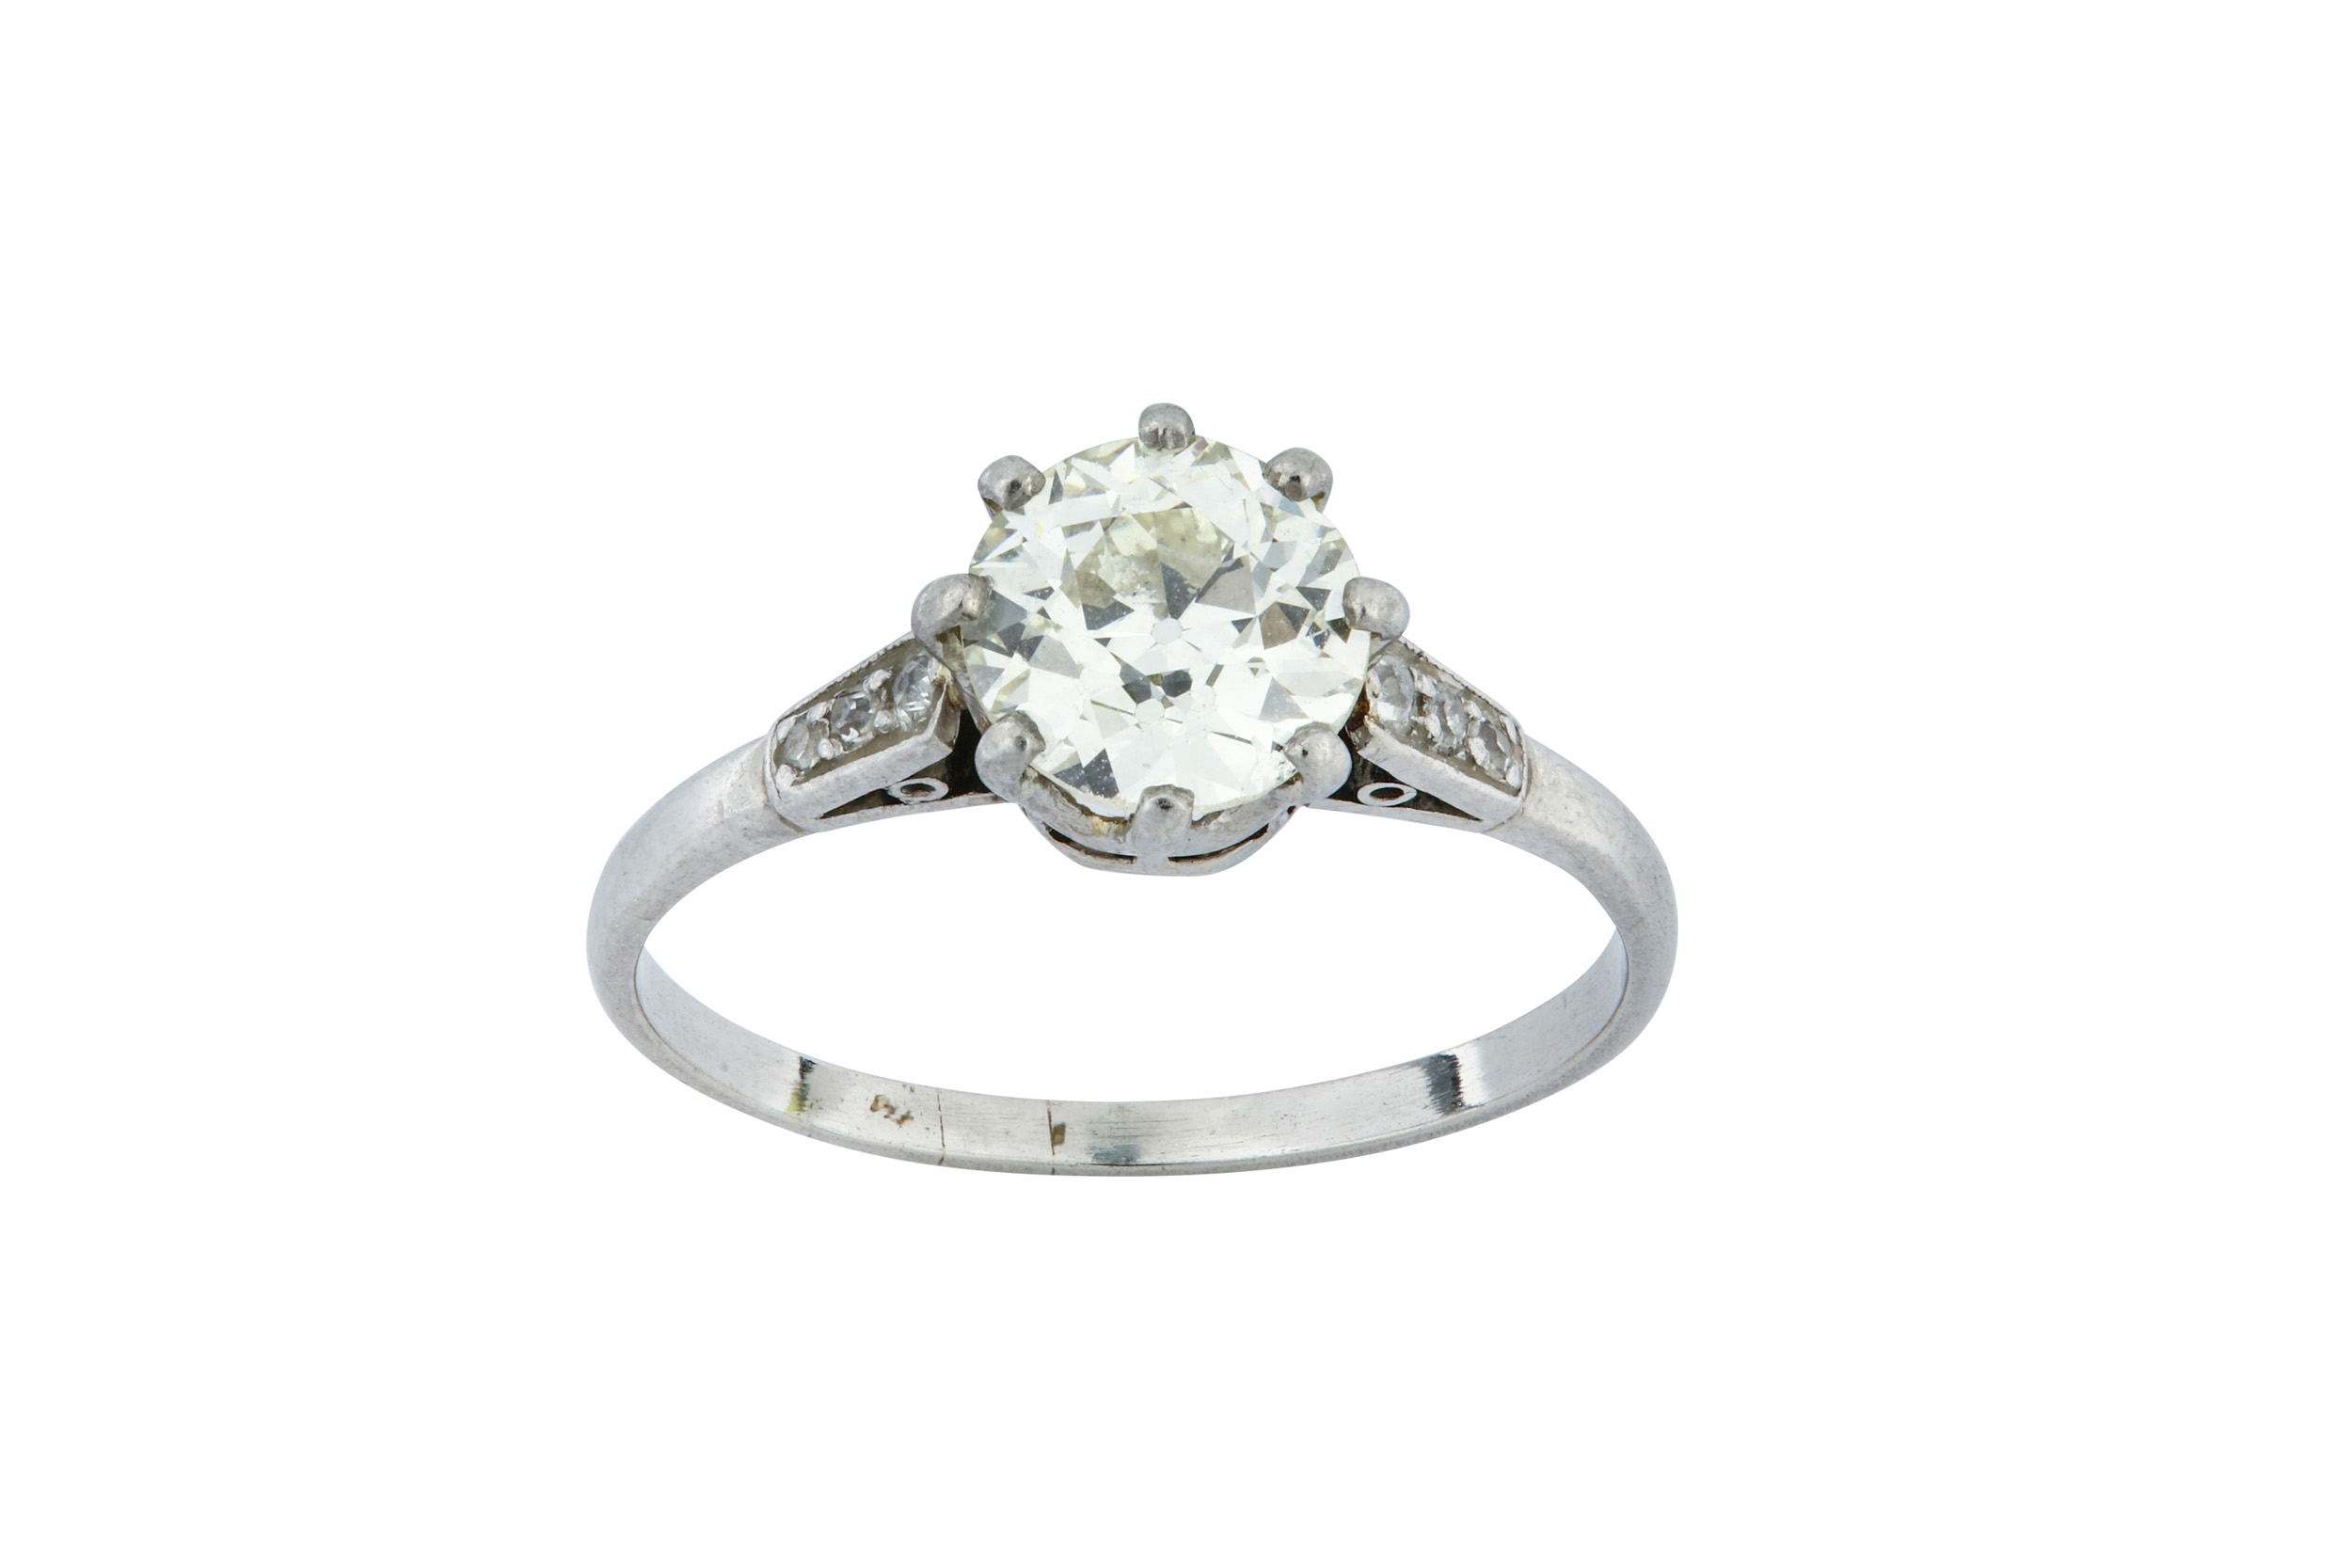 Lot 48 - A diamond single-stone ring